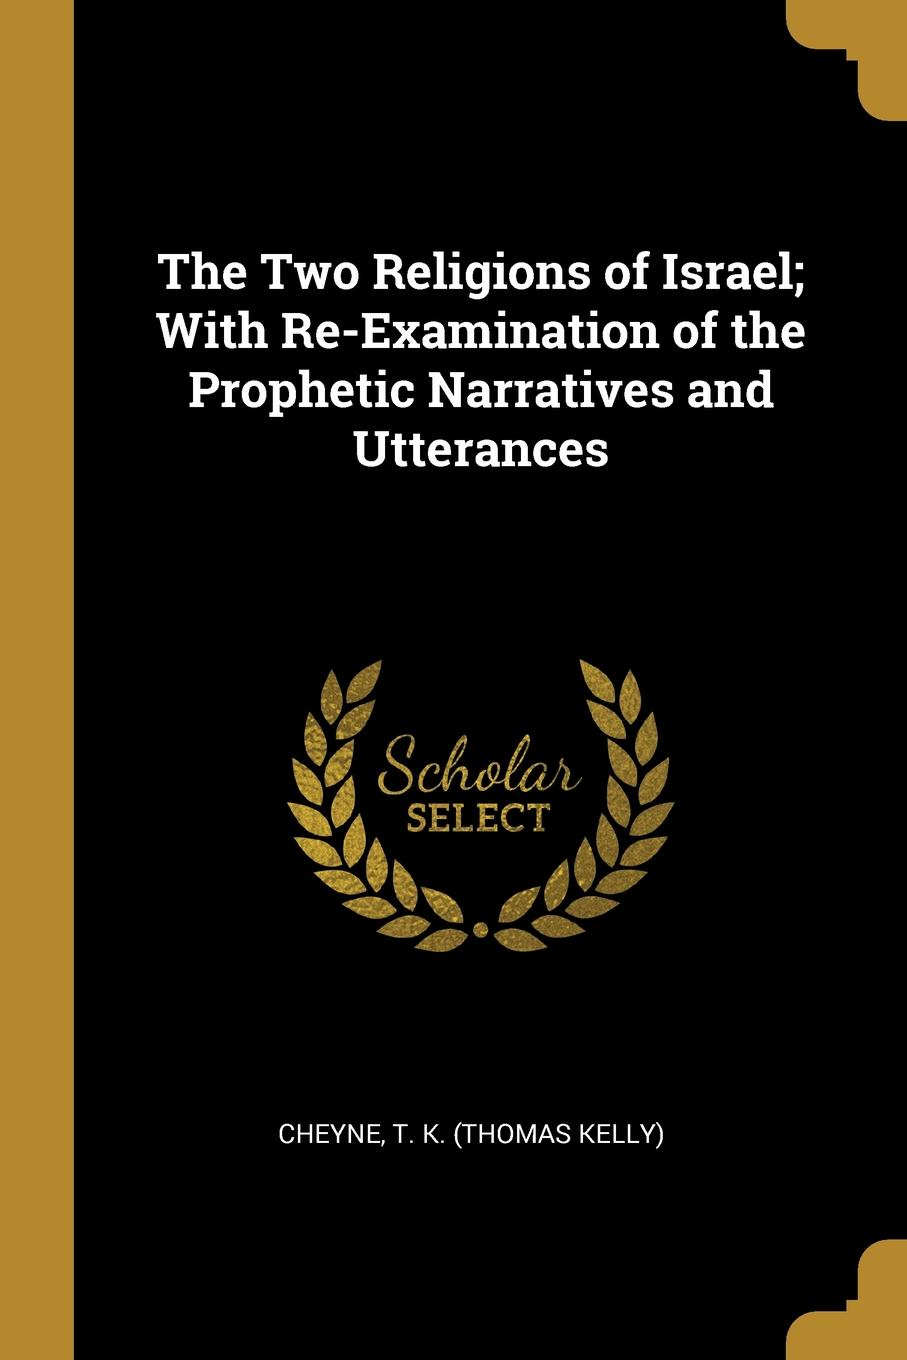 The Two Religions of Israel; With Re-Examination of the Prophetic Narratives and Utterances